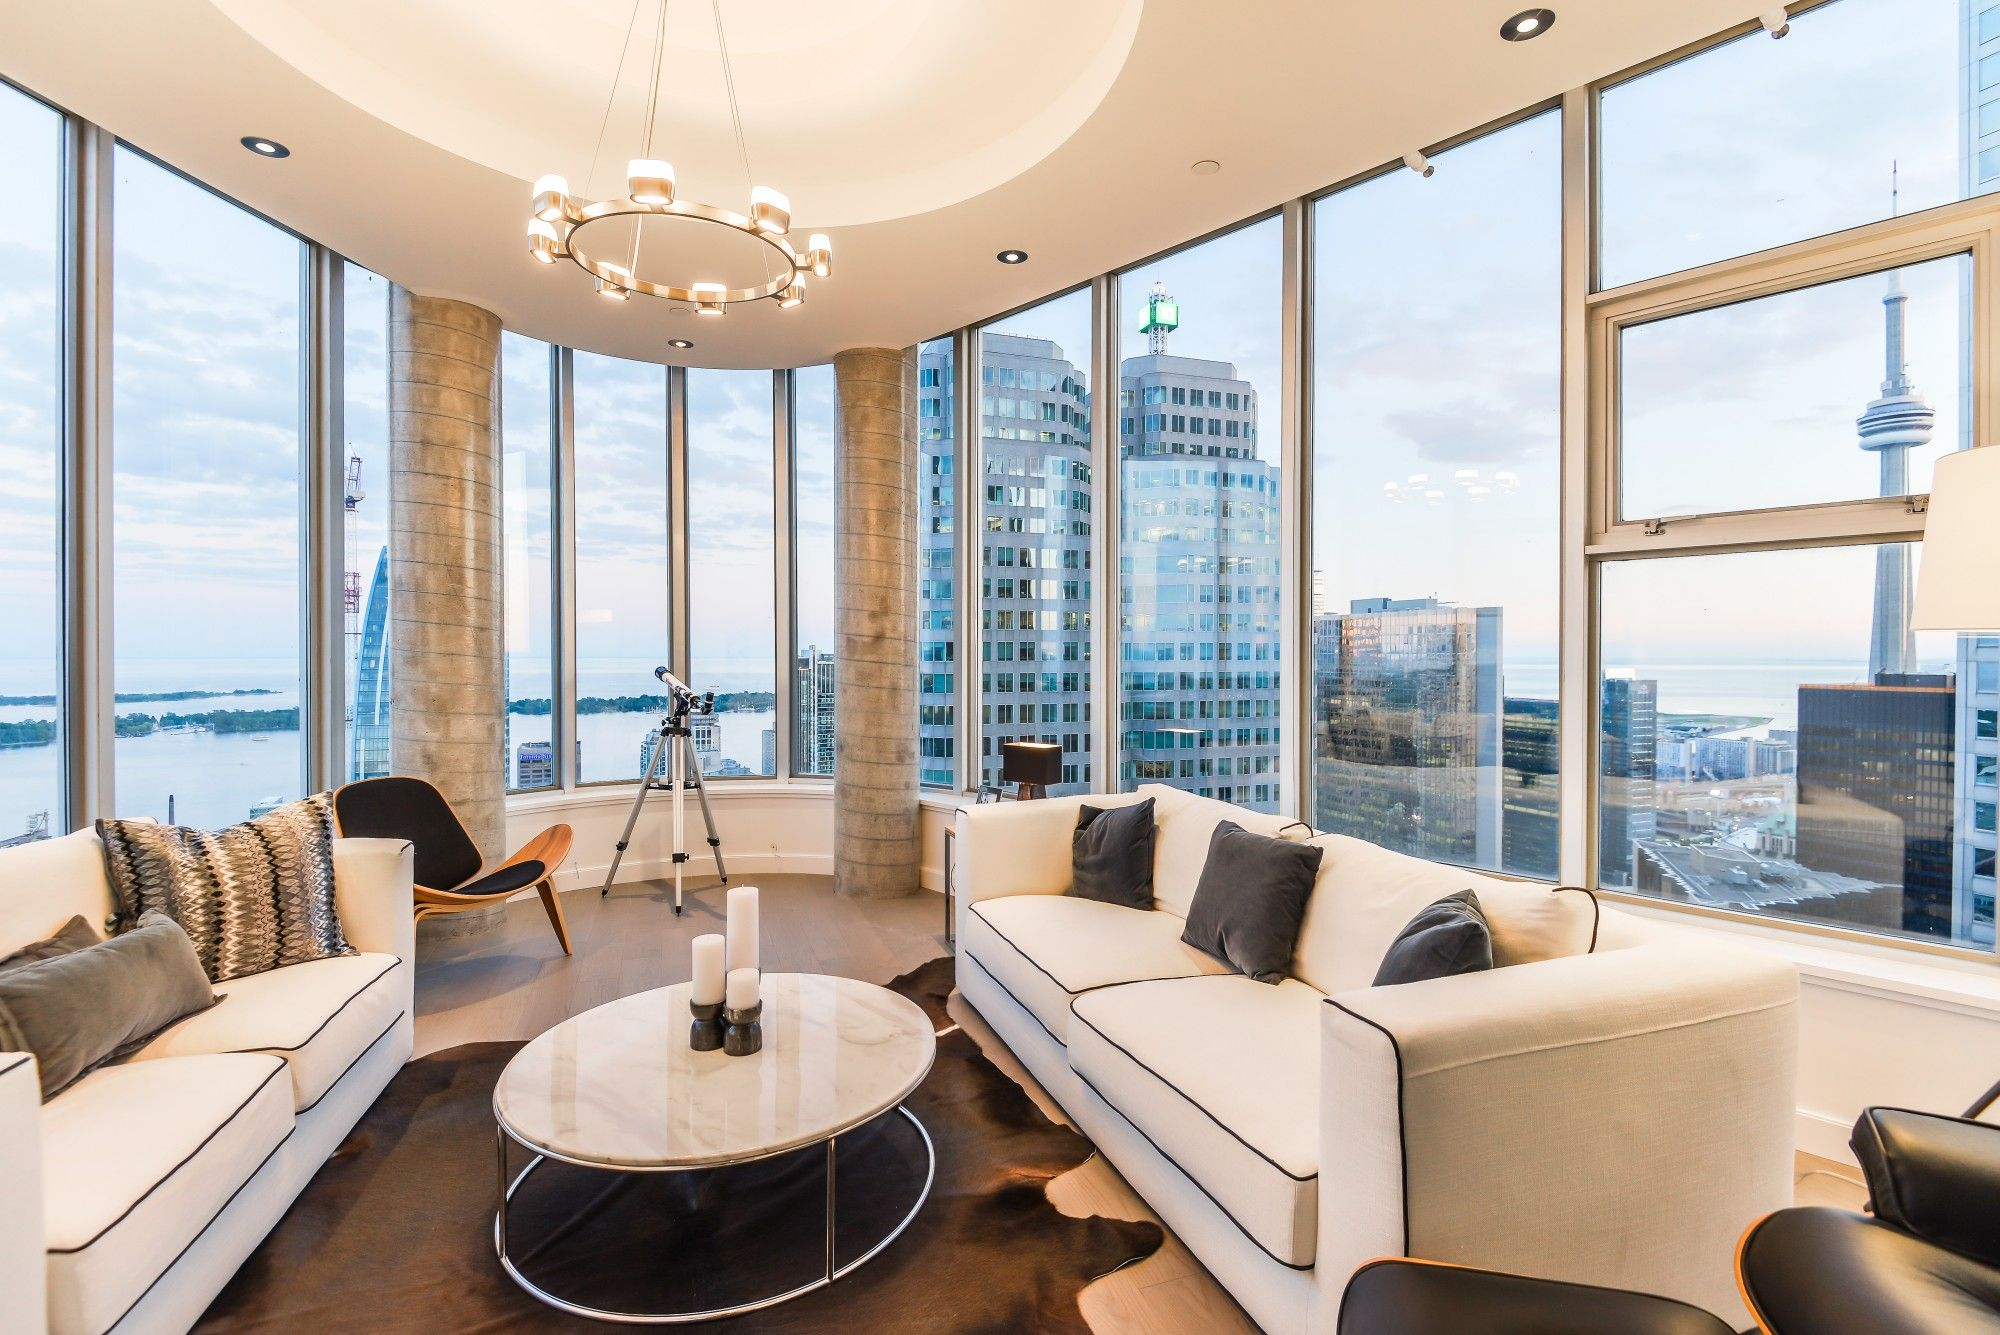 The 3 4 Million Penthouse That Proves Super Luxurious Condos Can Be Tough To Sell Condo Living Luxury Condo Condo Decorating